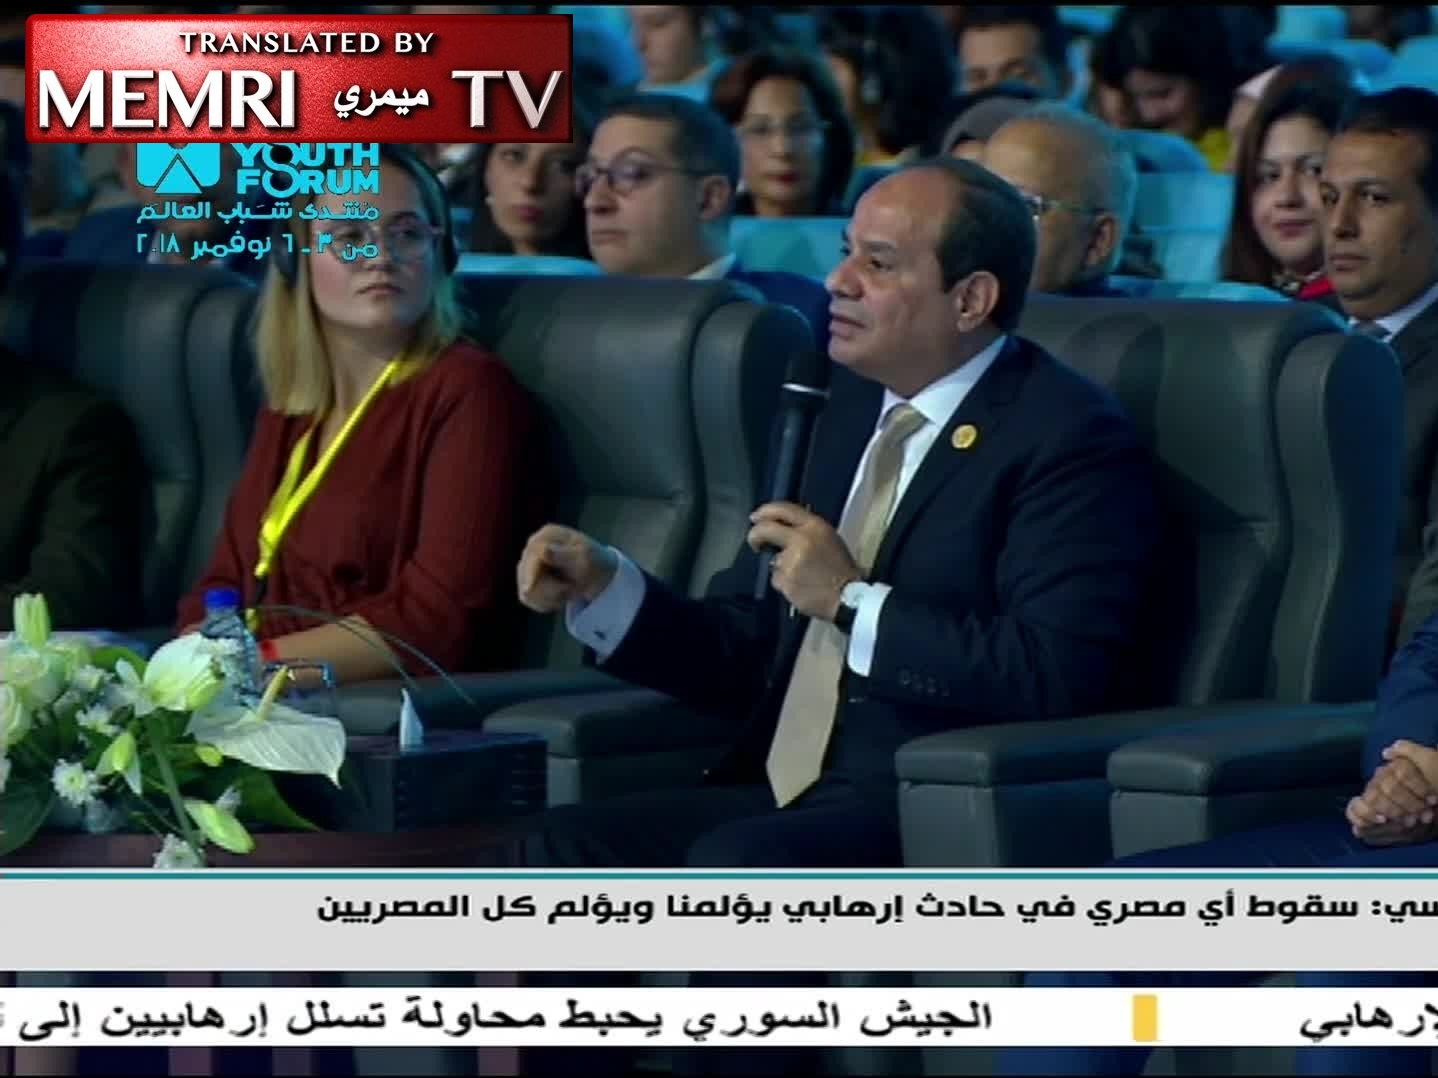 Egyptian President Al-Sisi: We Enabled Building of Churches, Synagogues in Egypt; All People Have the Right to Worship or Not Worship; Syria Should Not Expect Developed Countries to Pay for Its Restoration